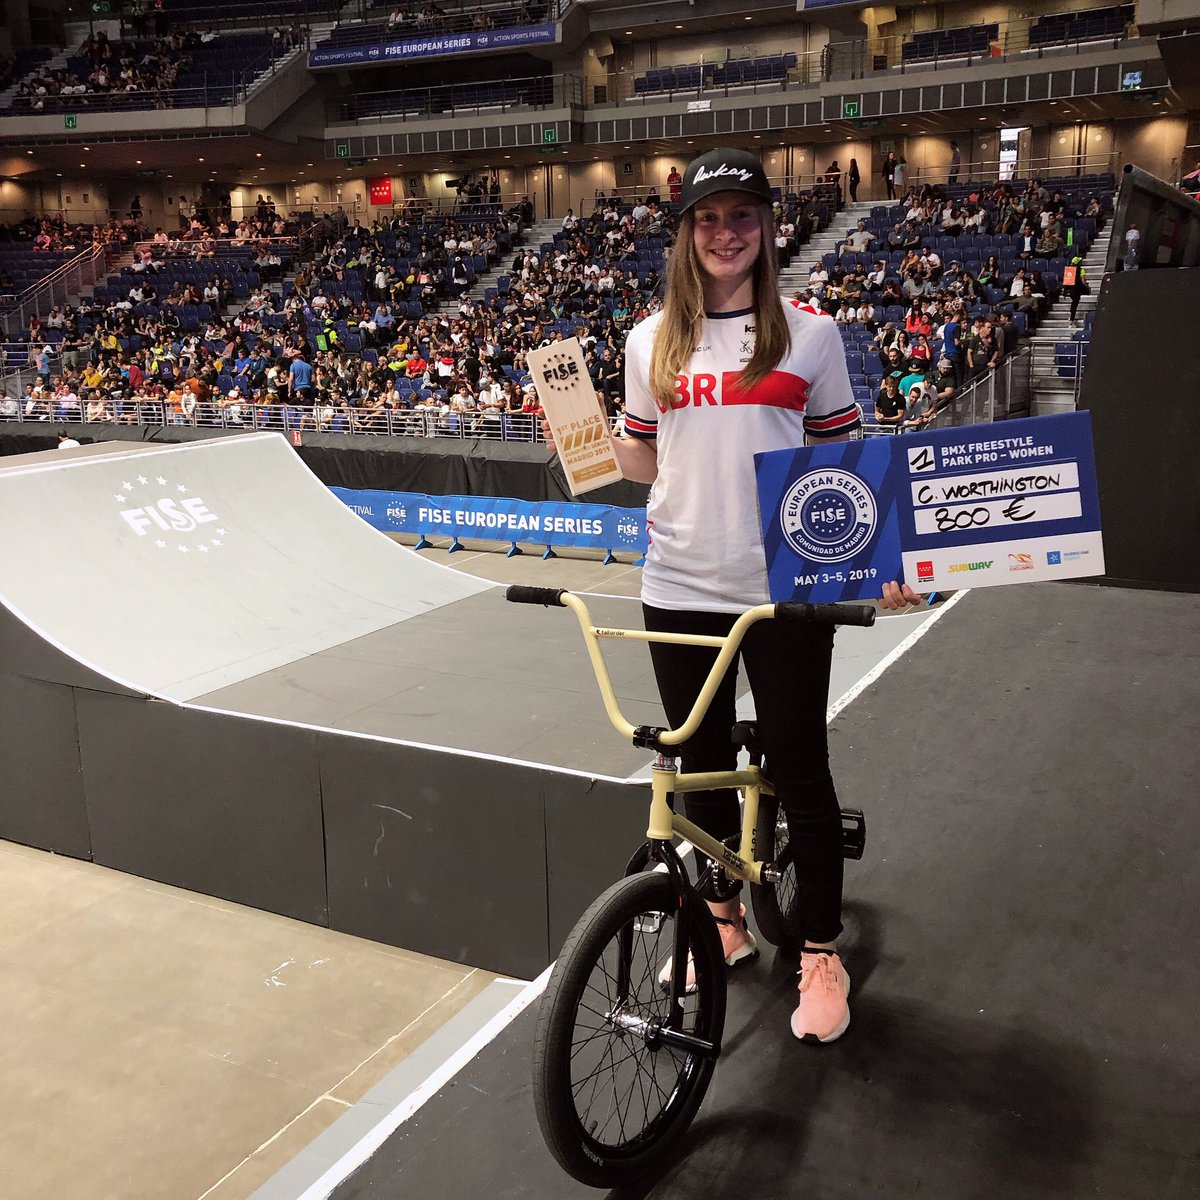 Stoked to bring home the win at @fiseeuropeanseries this weekend 🥇🇬🇧 congrats to @lara_lessmann 2nd and @jennifer_wohlrab_bmx_ in 3rd 👏🏻 Thanks for the support everyone and I hope to get back to Madrid again soon!  . . @tallorderbmx @britishcycling @alansbmx @owkayclothing